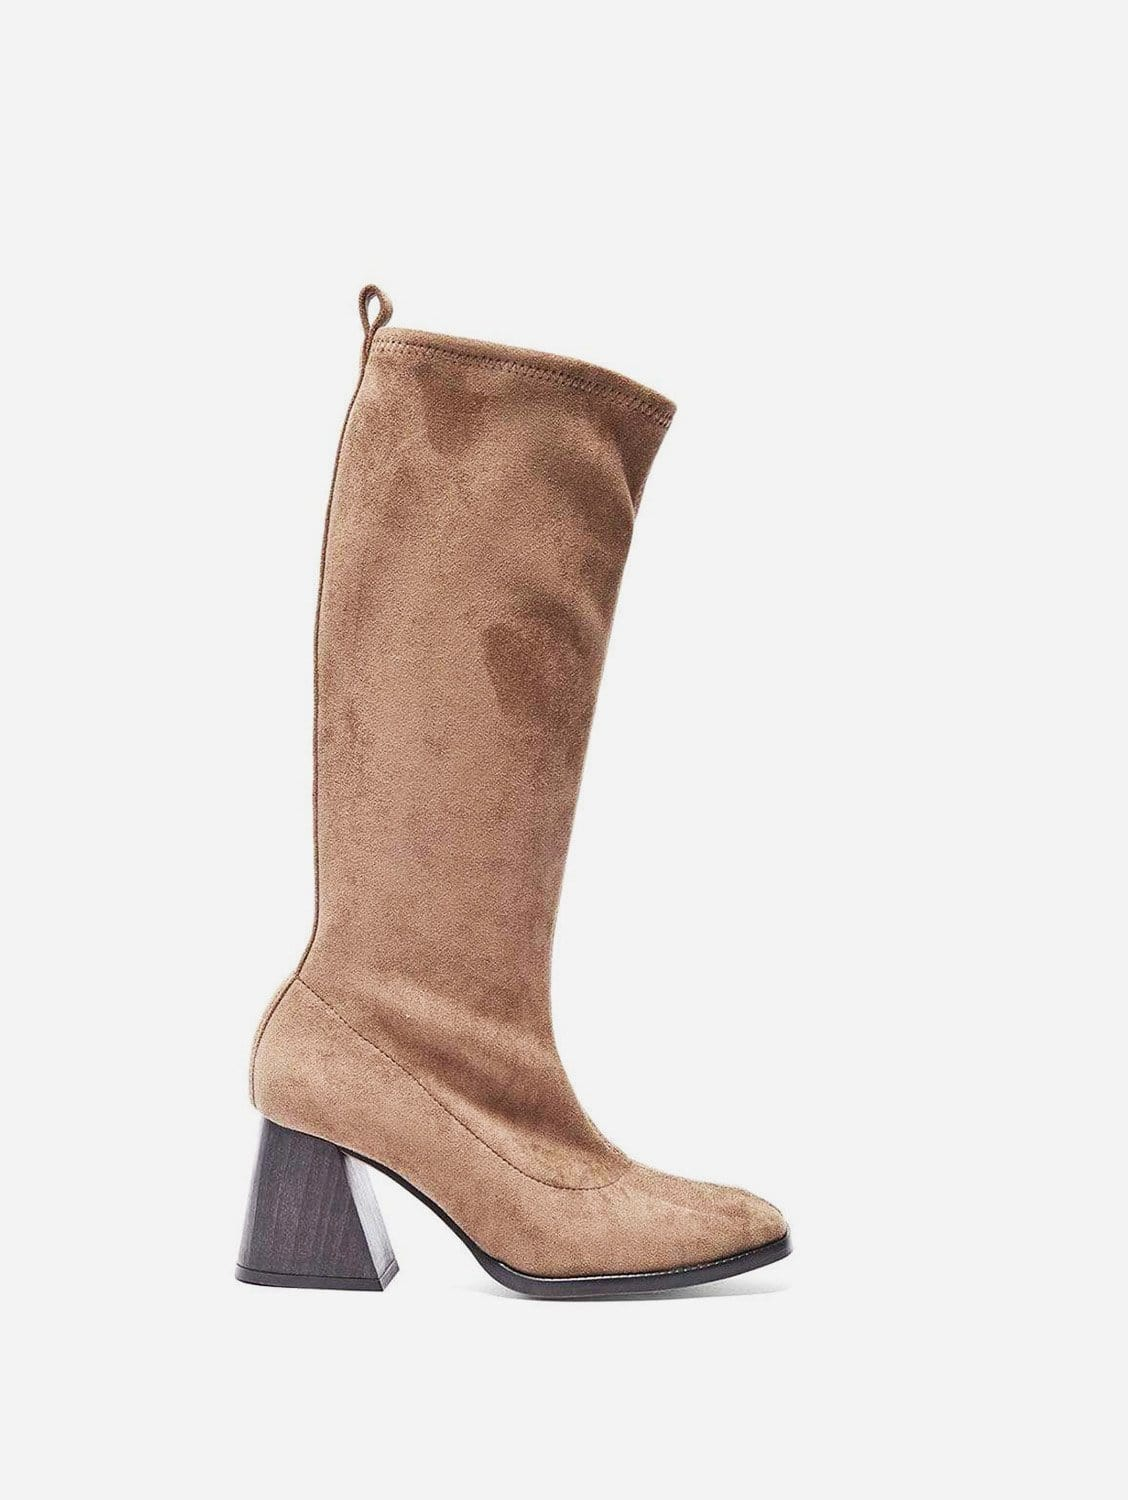 Luz Recycled Polyester Vegan Suede Knee Boots   Taupe